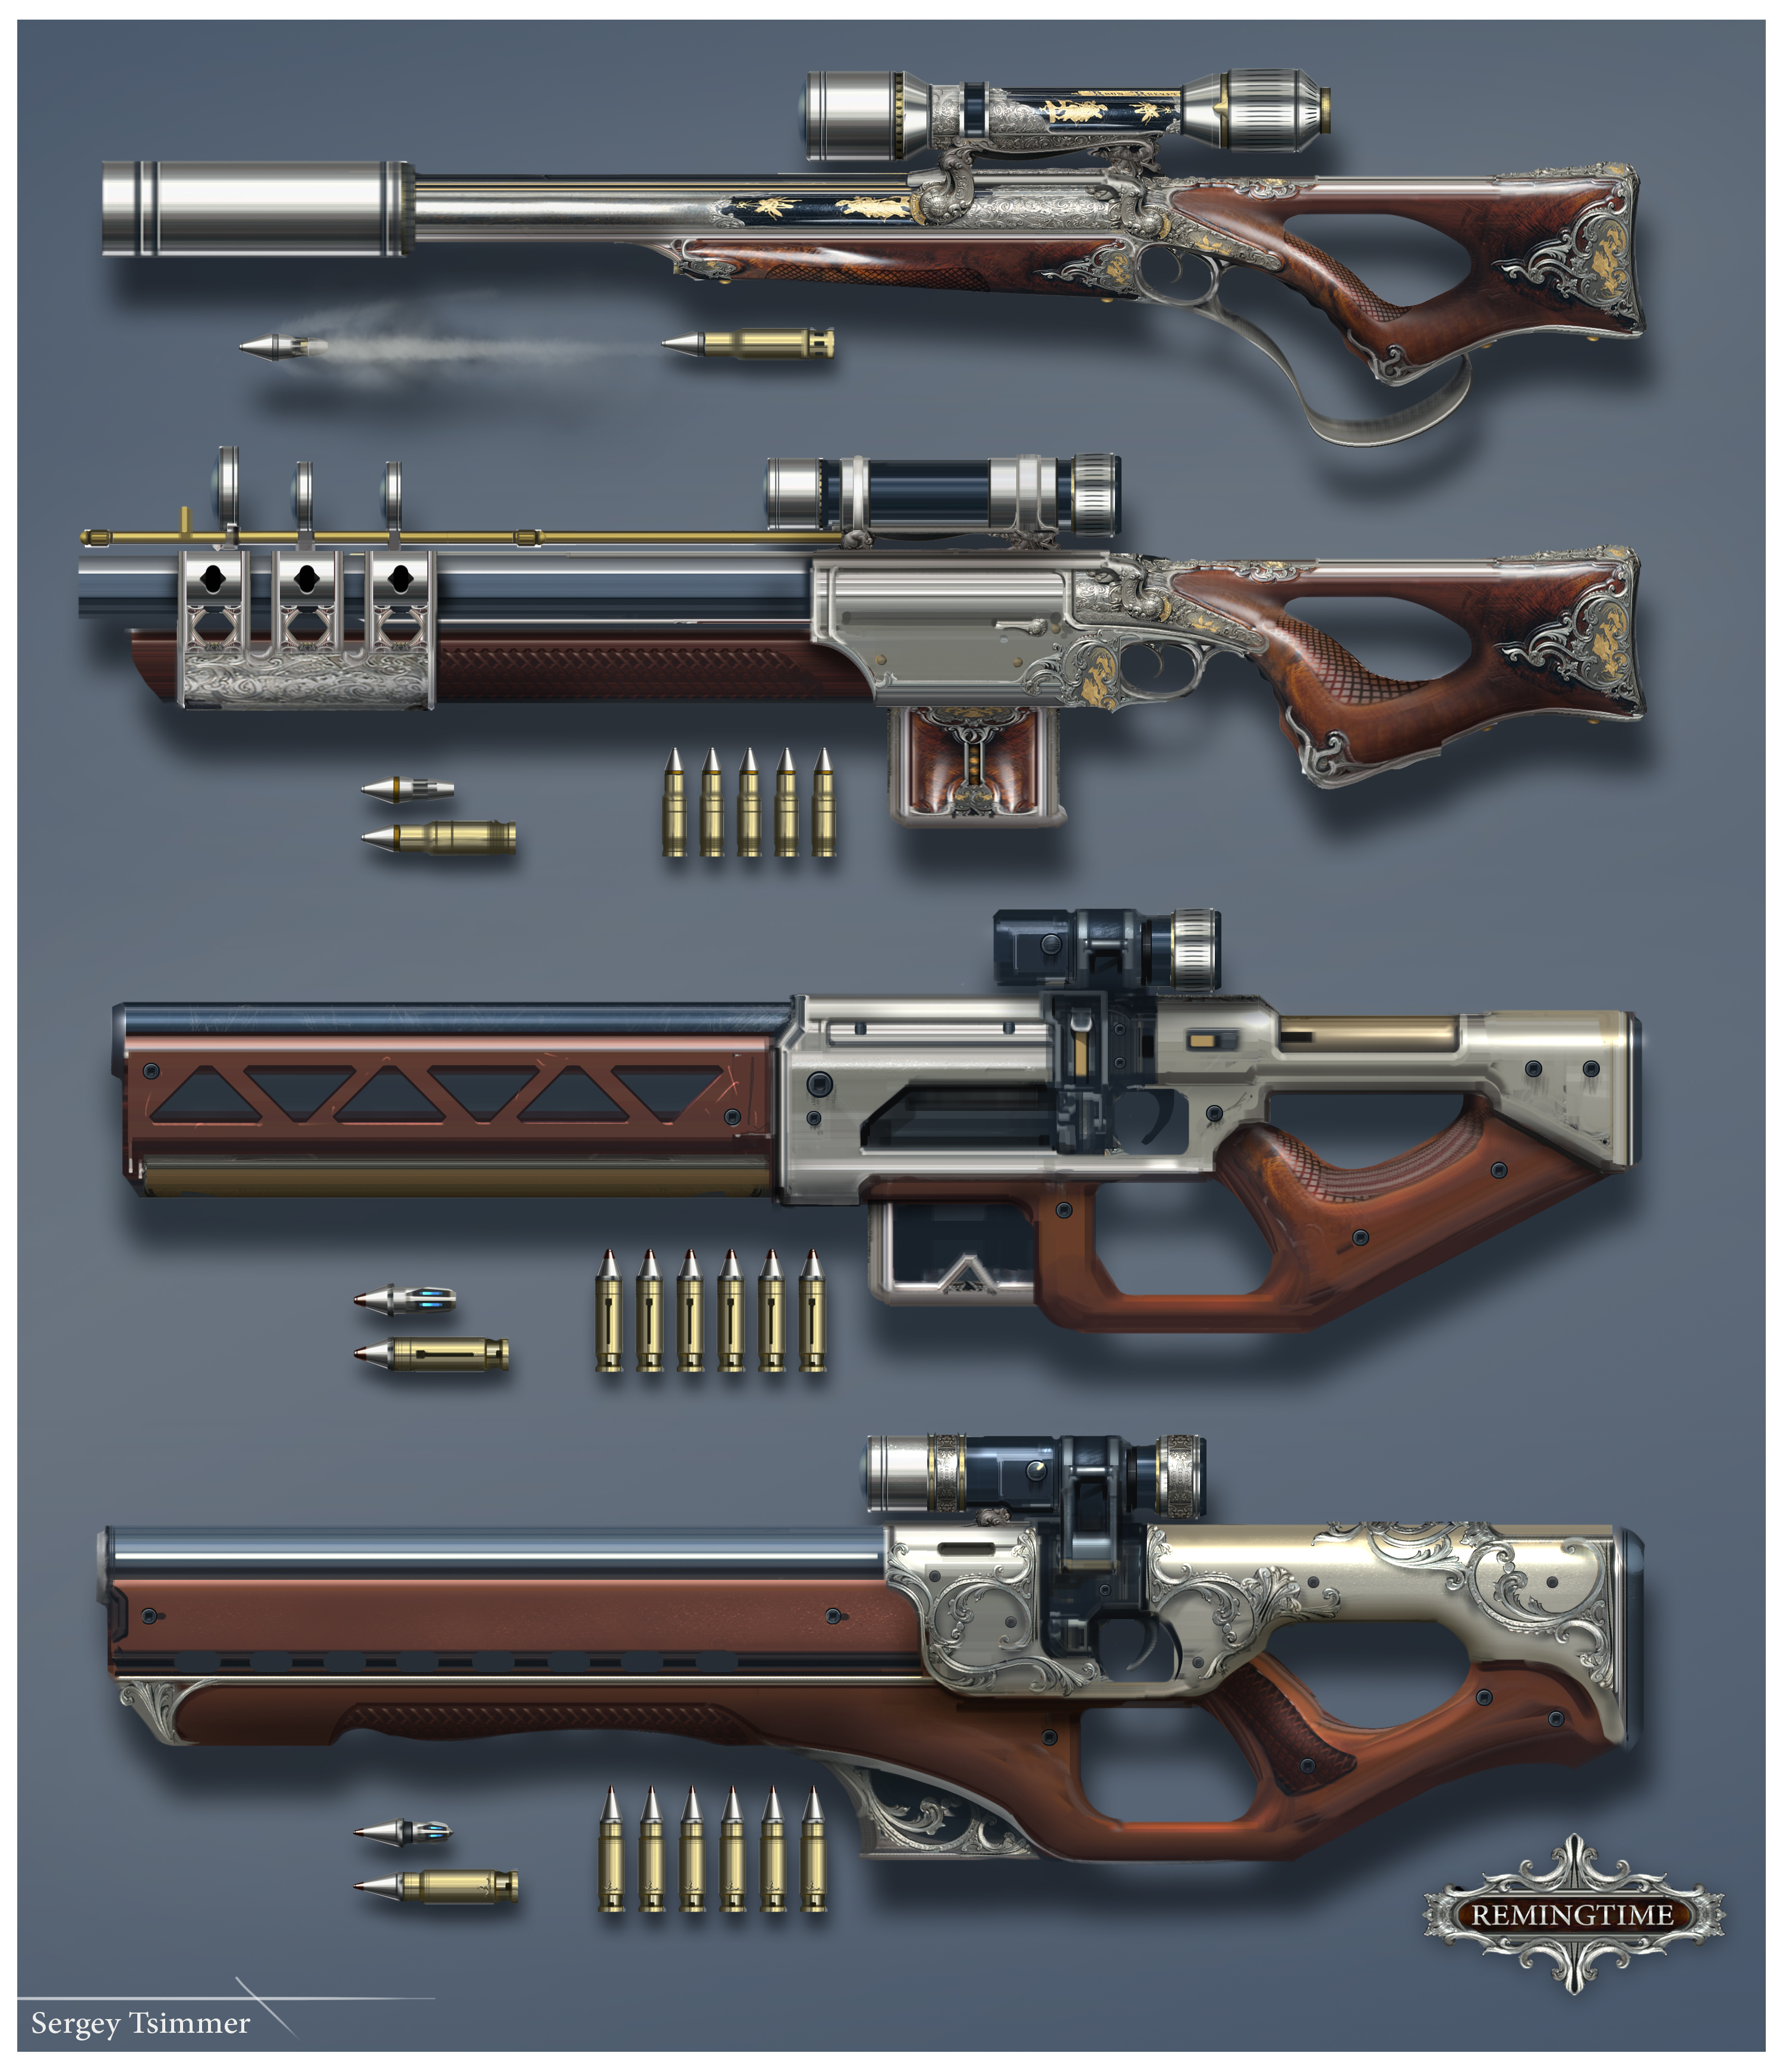 remingtime weapon by tsimmers on deviantart